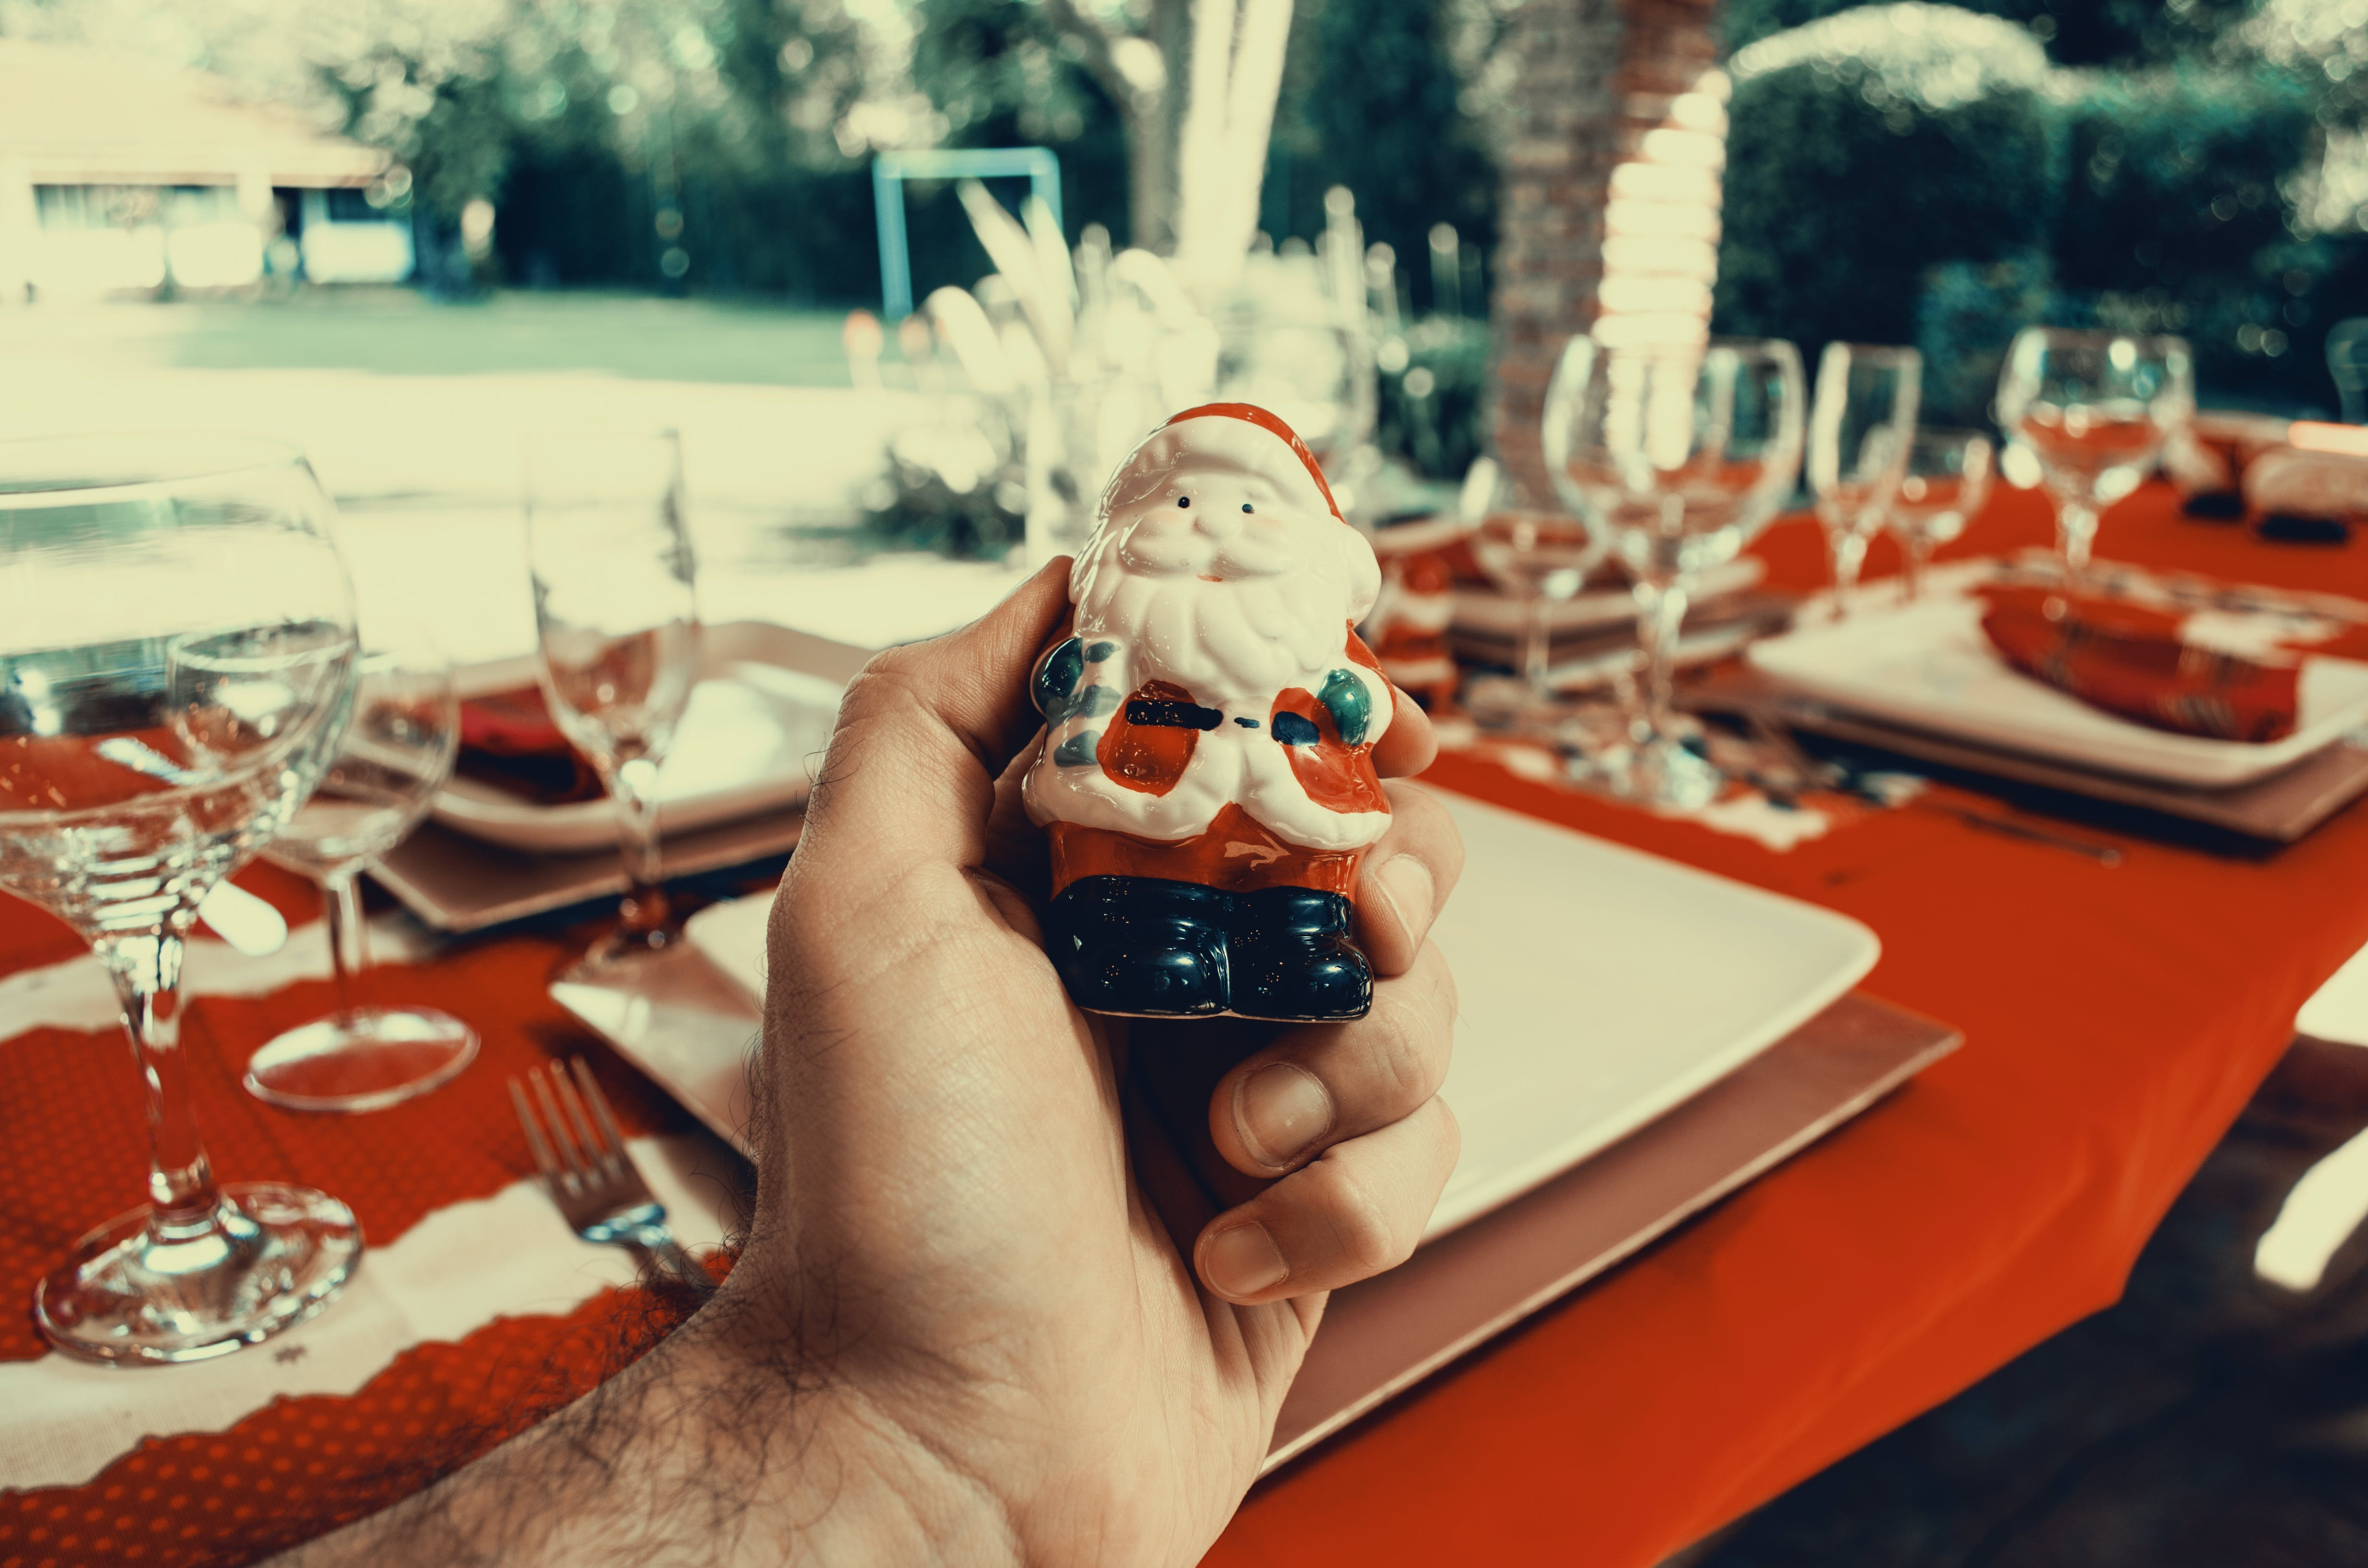 Santa Claus Ceramic Decor